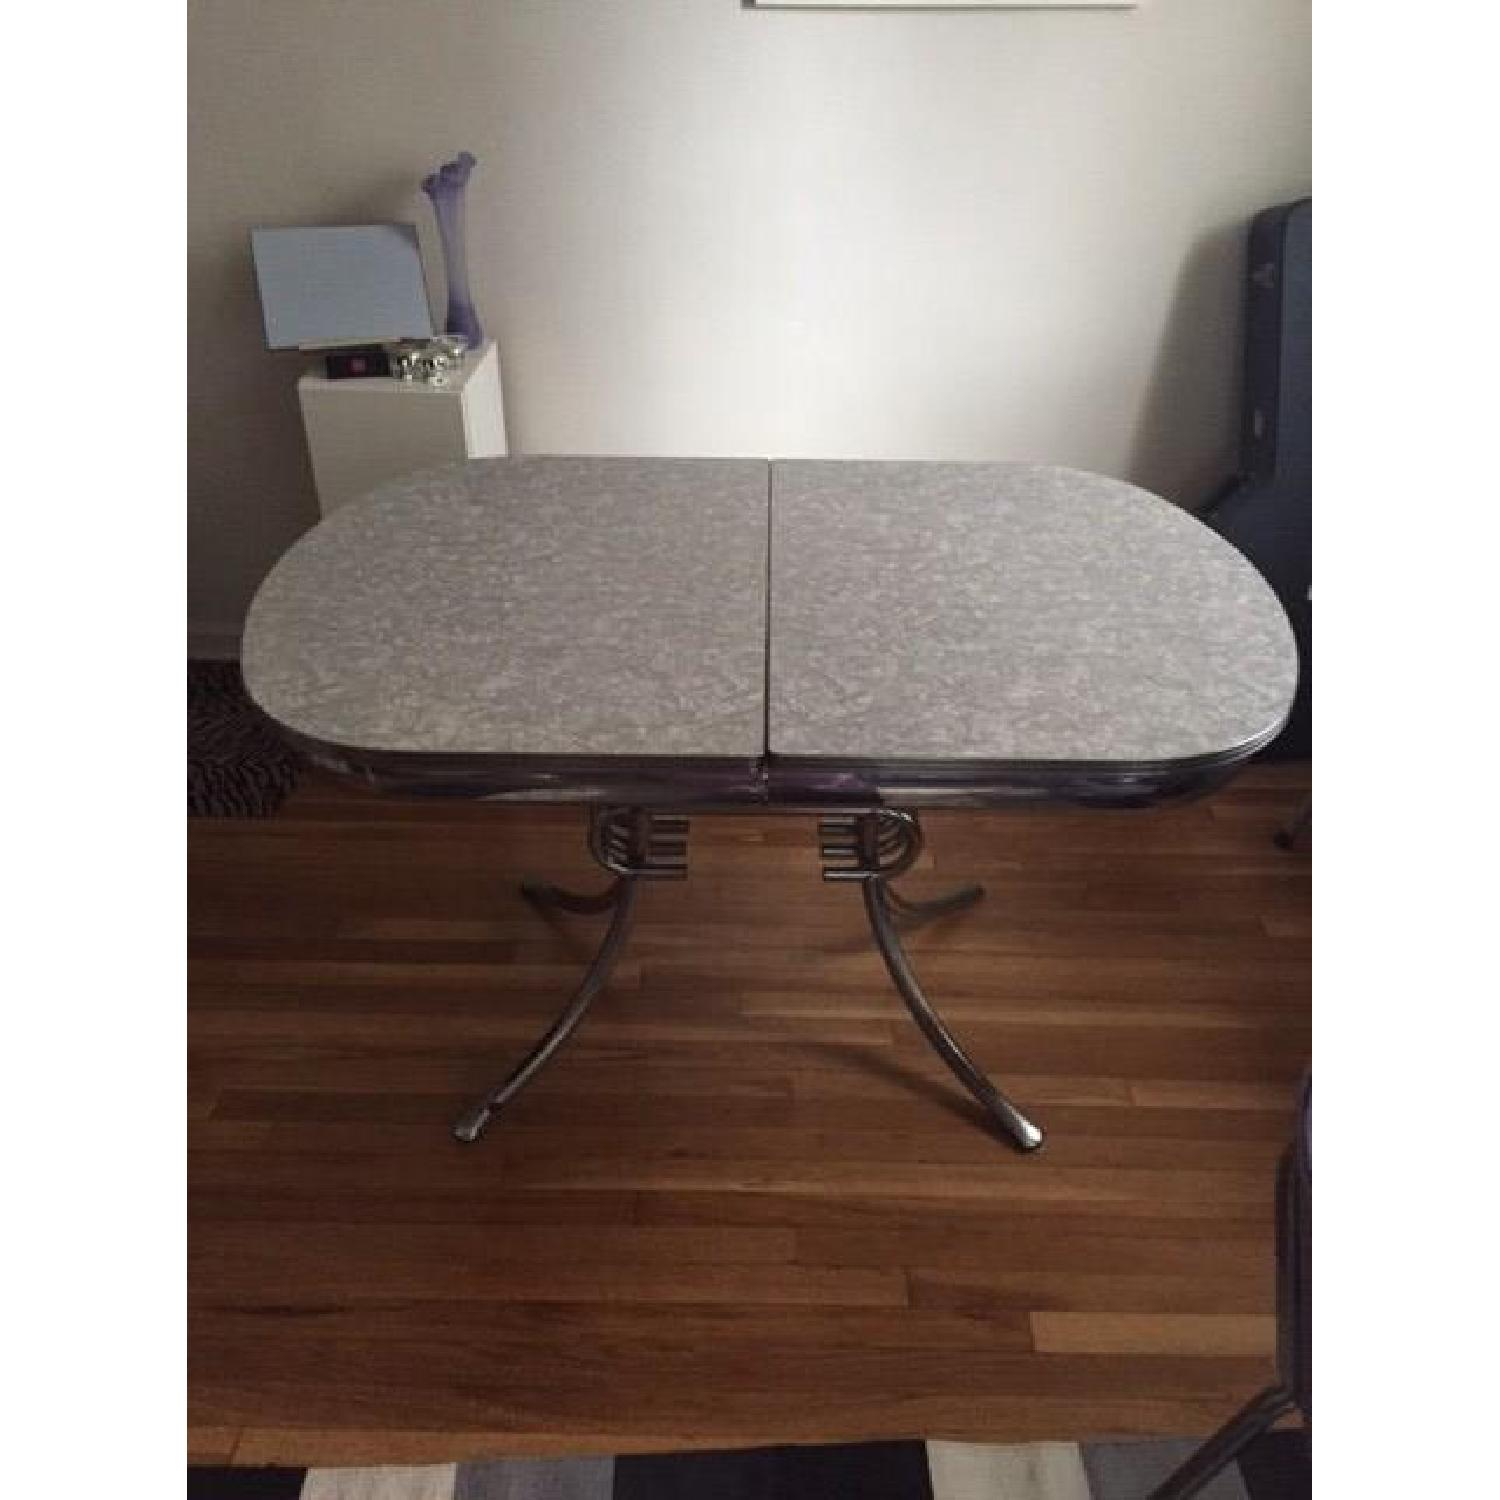 Vintage Retro 50's Large Dinette Table w/ 4 Chairs - image-1